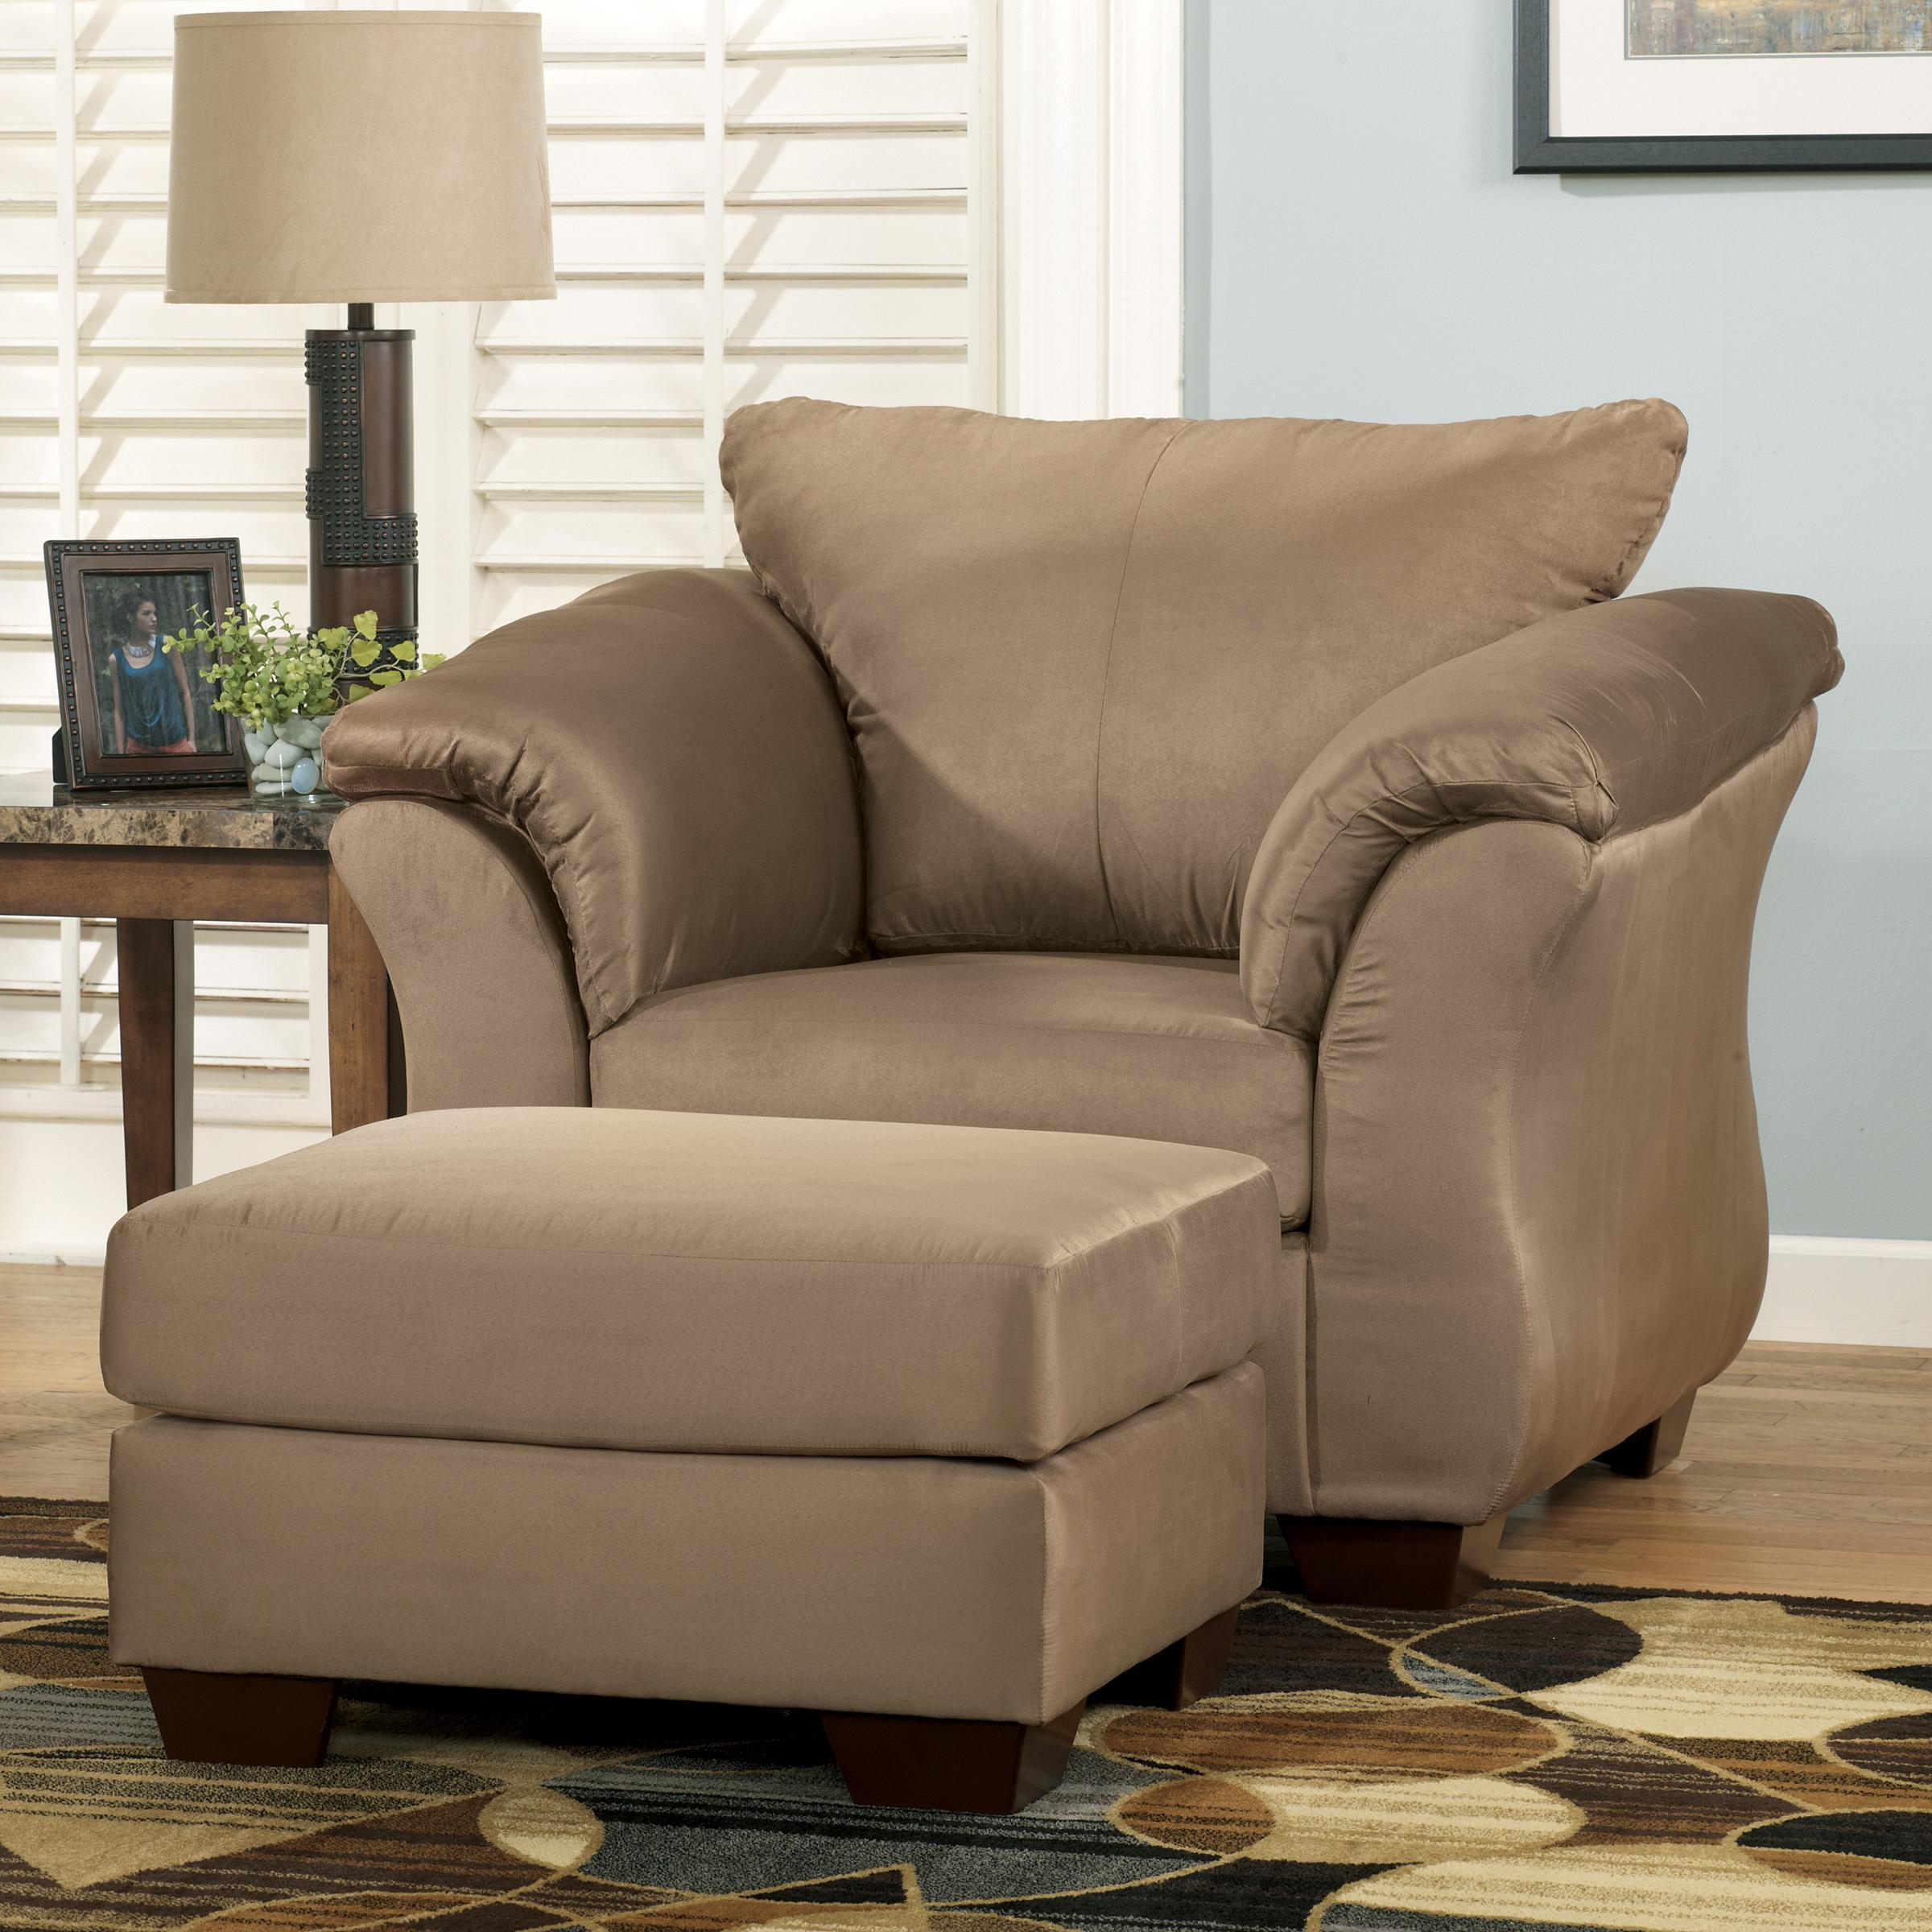 Signature Design By Ashley Darcy Mocha Contemporary Upholstered Chair And Ottoman With Tapered Legs Standard Furniture Chair Ottoman Sets